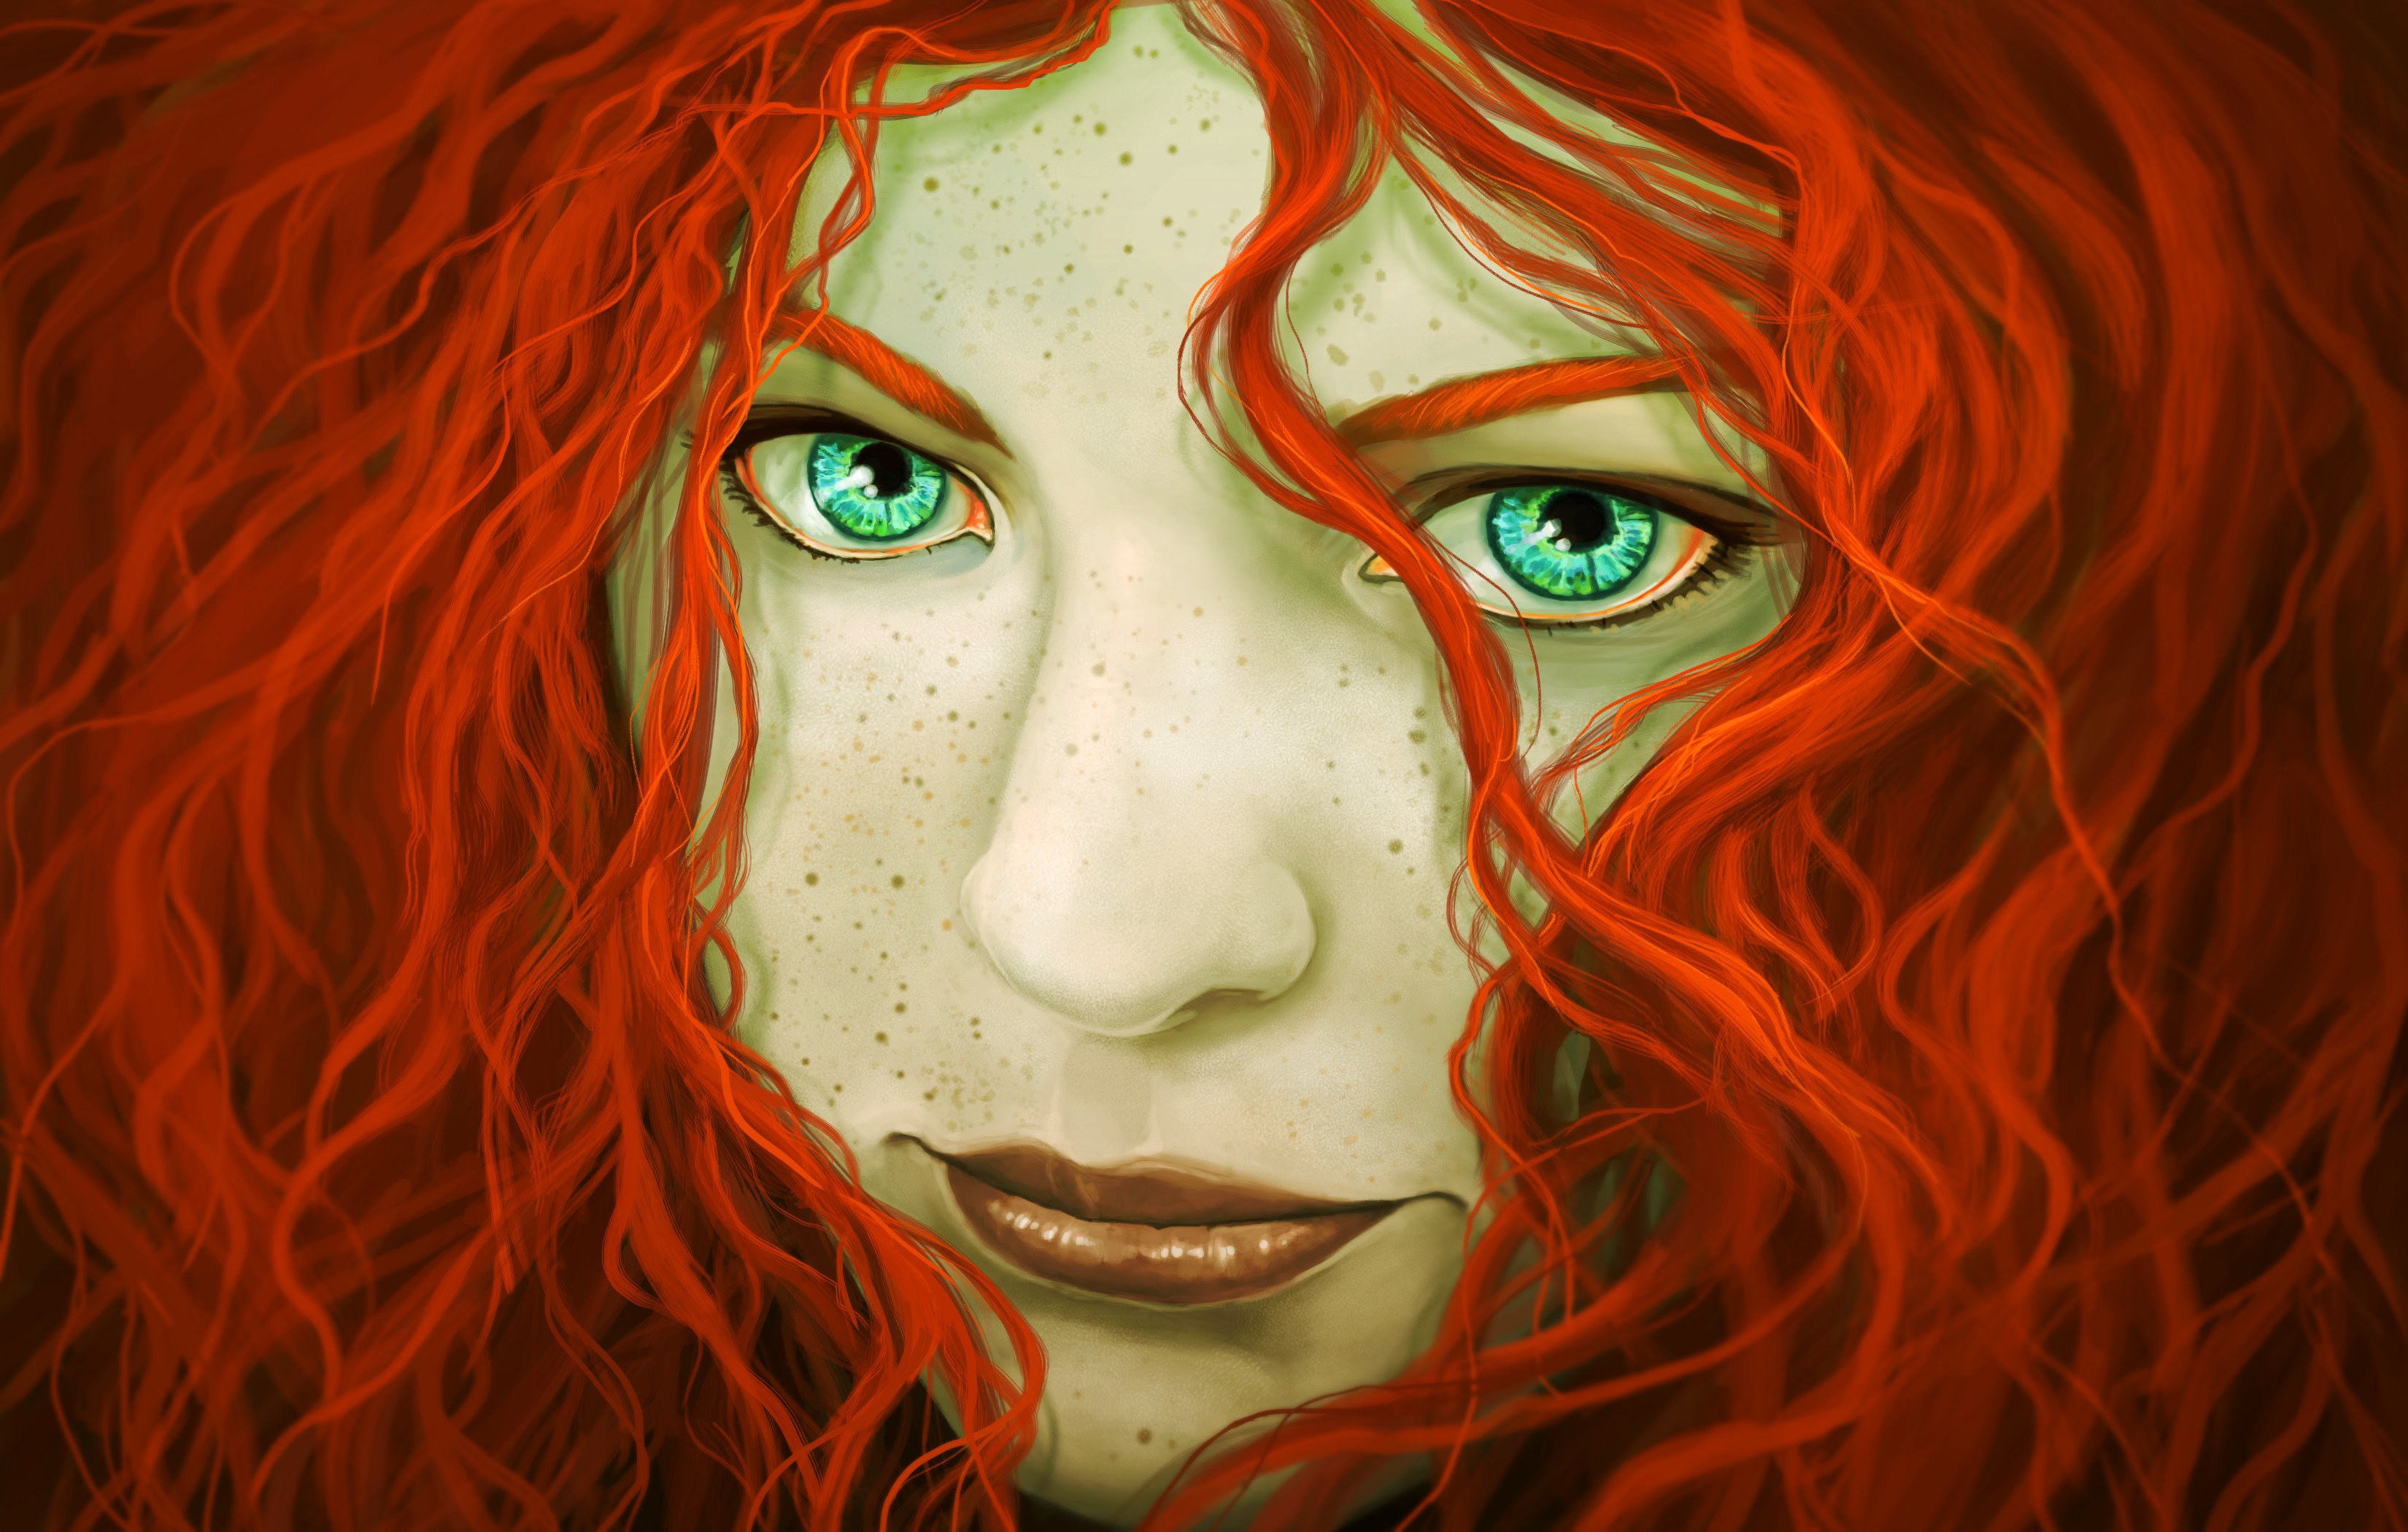 Painting Art Eyes Redhead girl Face Hair Fantasy Girls